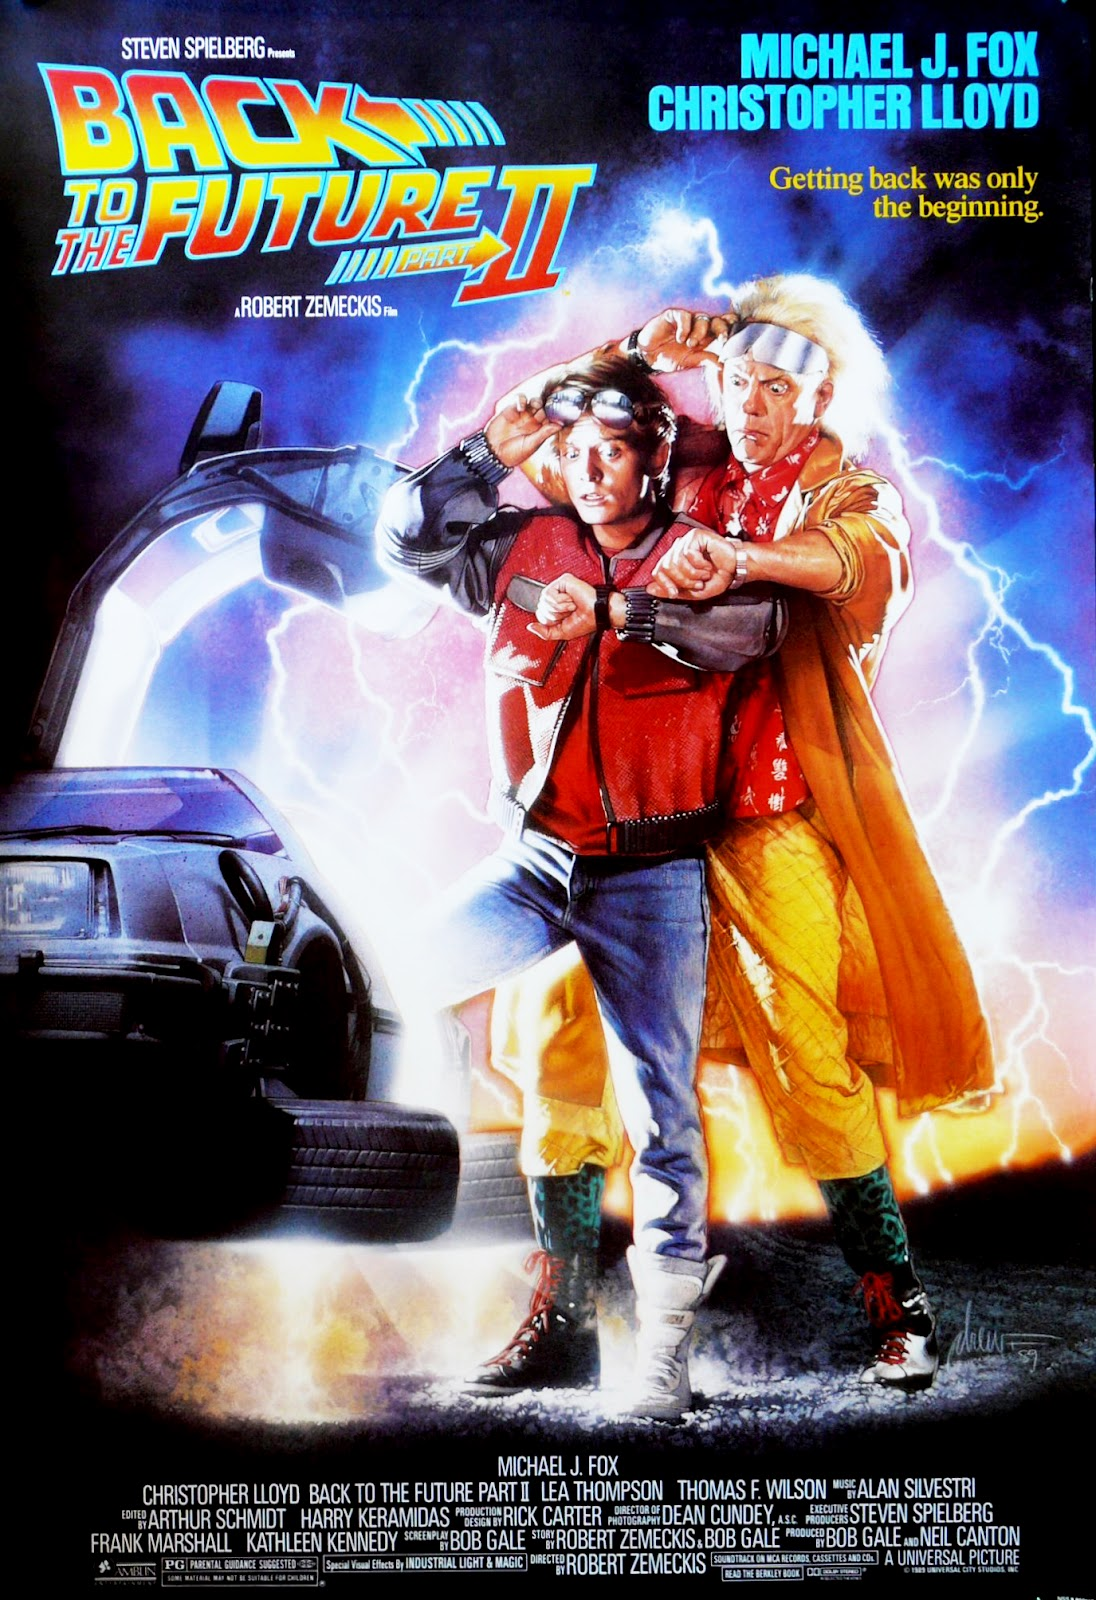 Back to the Future Part 2 (1989) ταινιες online seires xrysoi greek subs